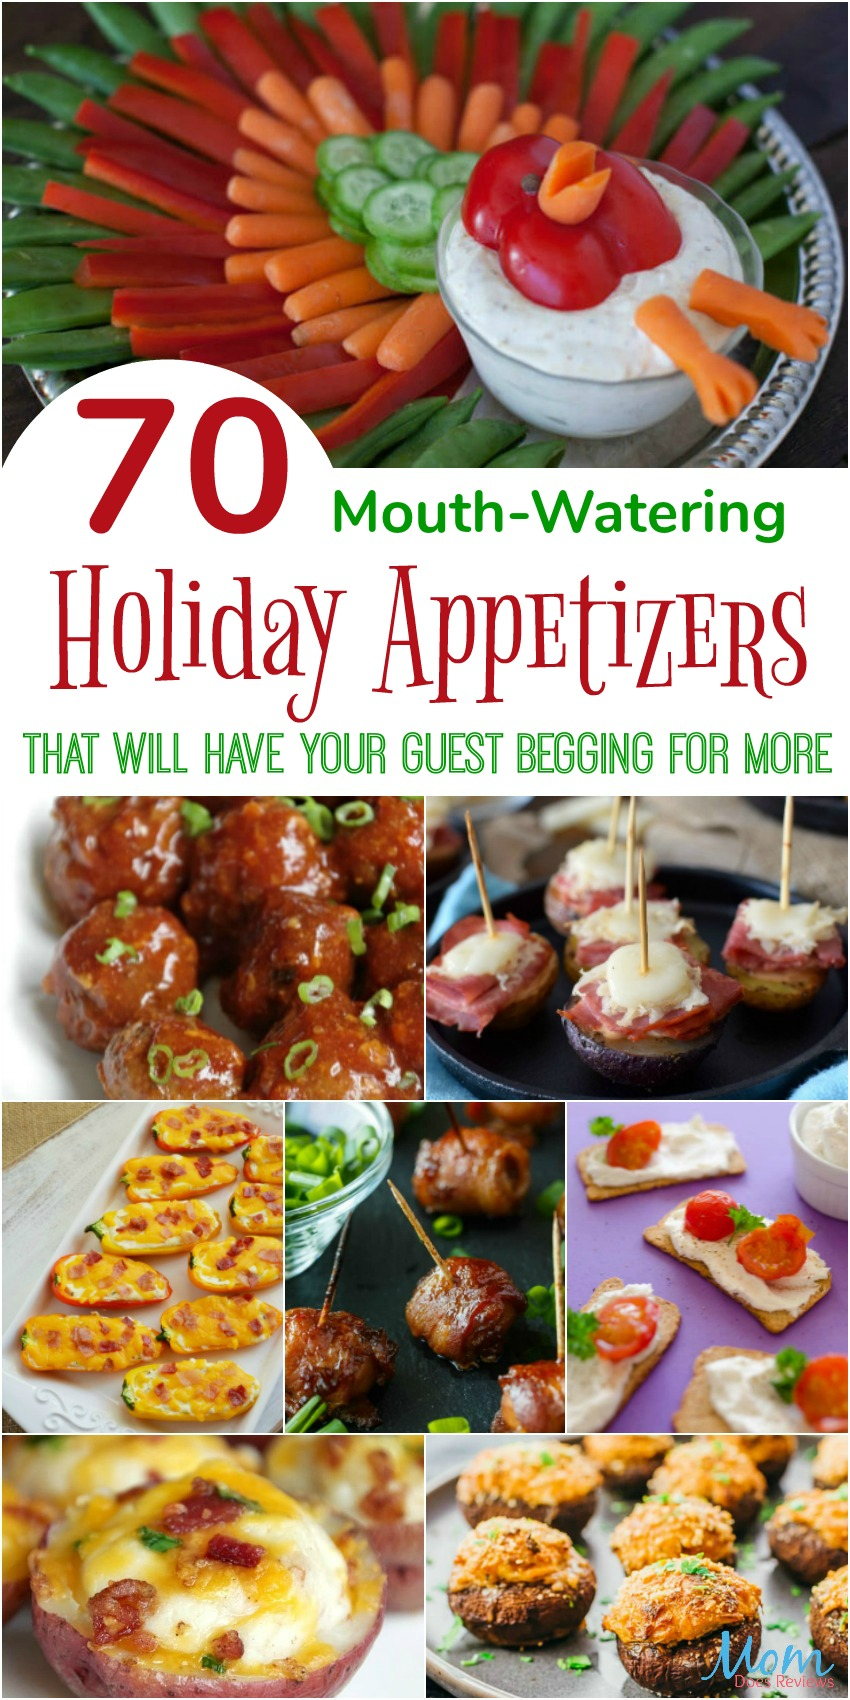 70 Mouth-Watering Holiday Appetizers that Will Have Your Guest Begging for More